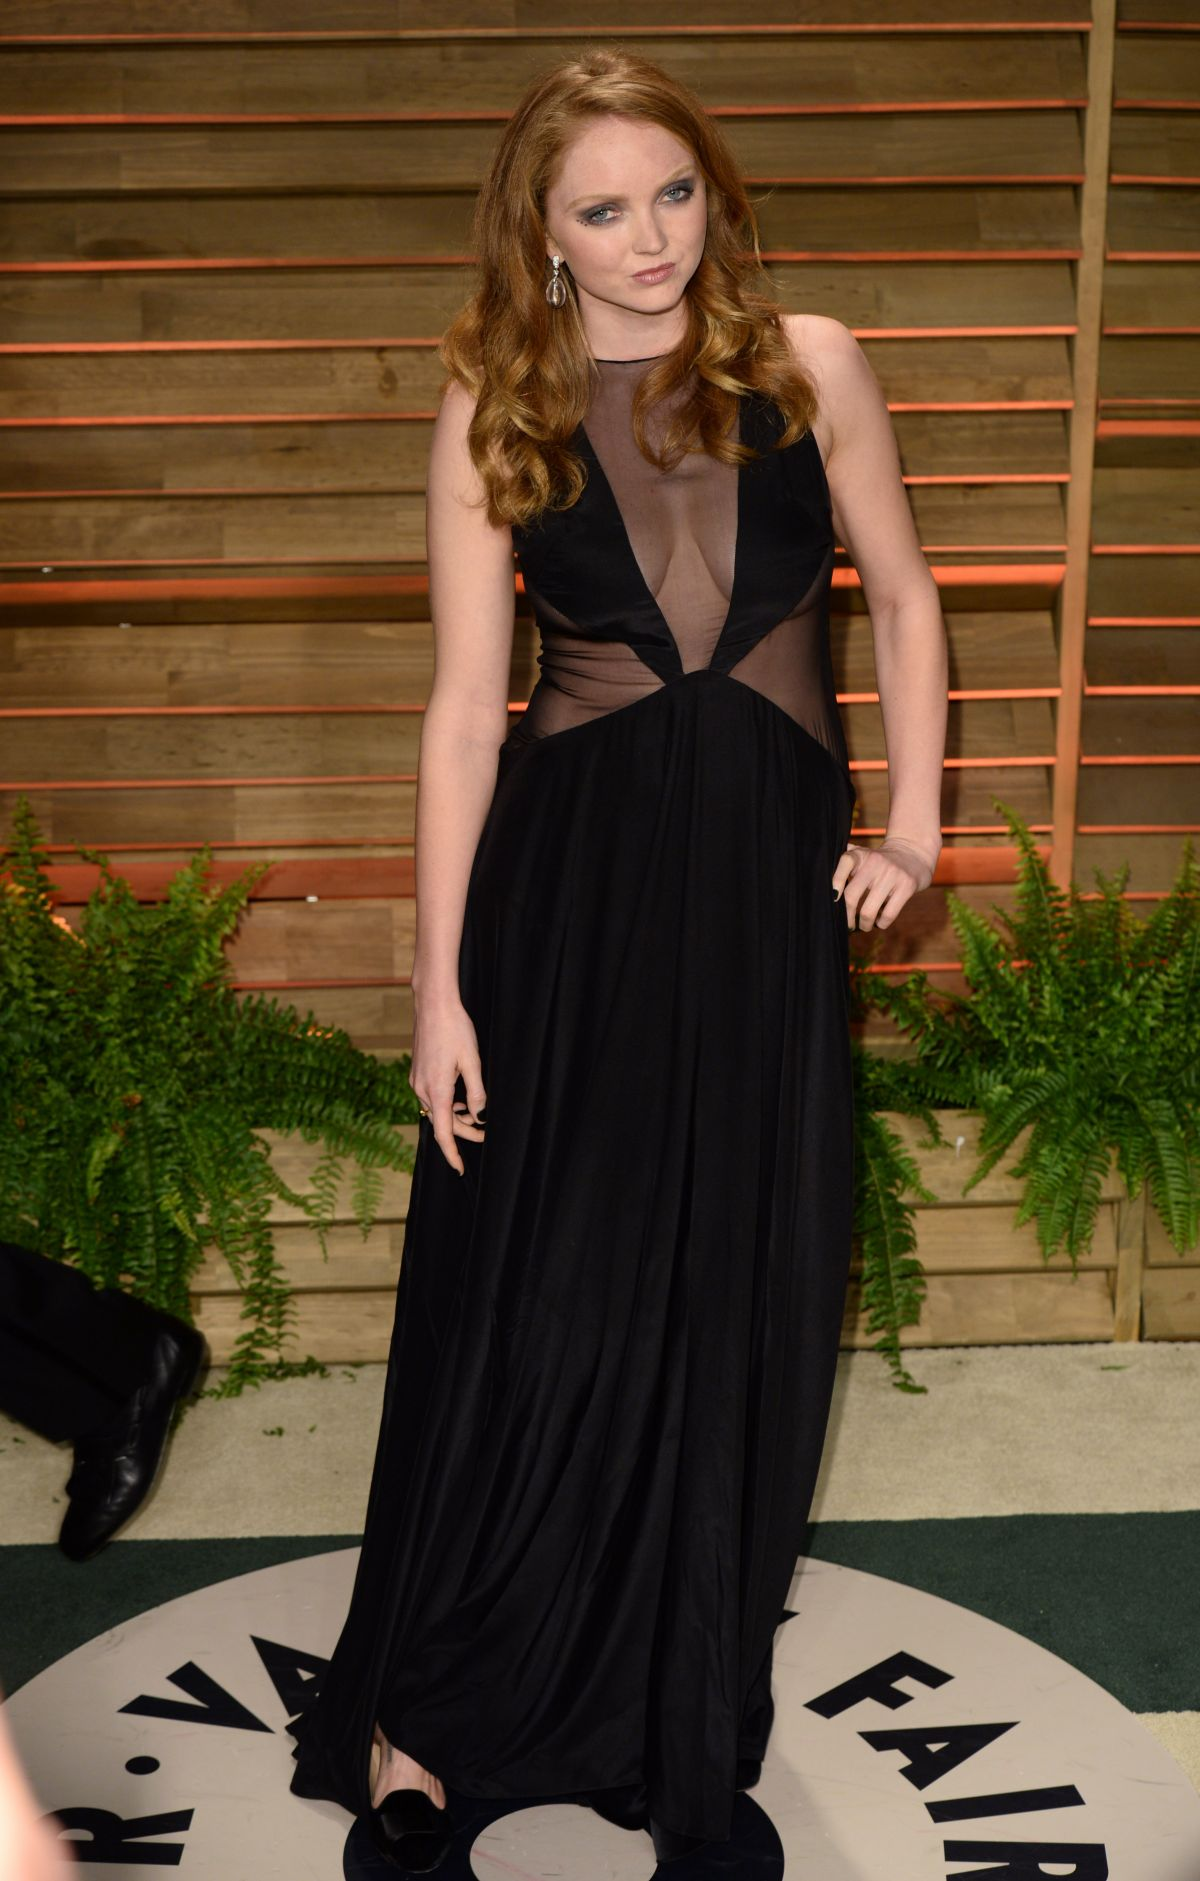 LILY COLE at Vanity Fair Oscar Party in Hollywood